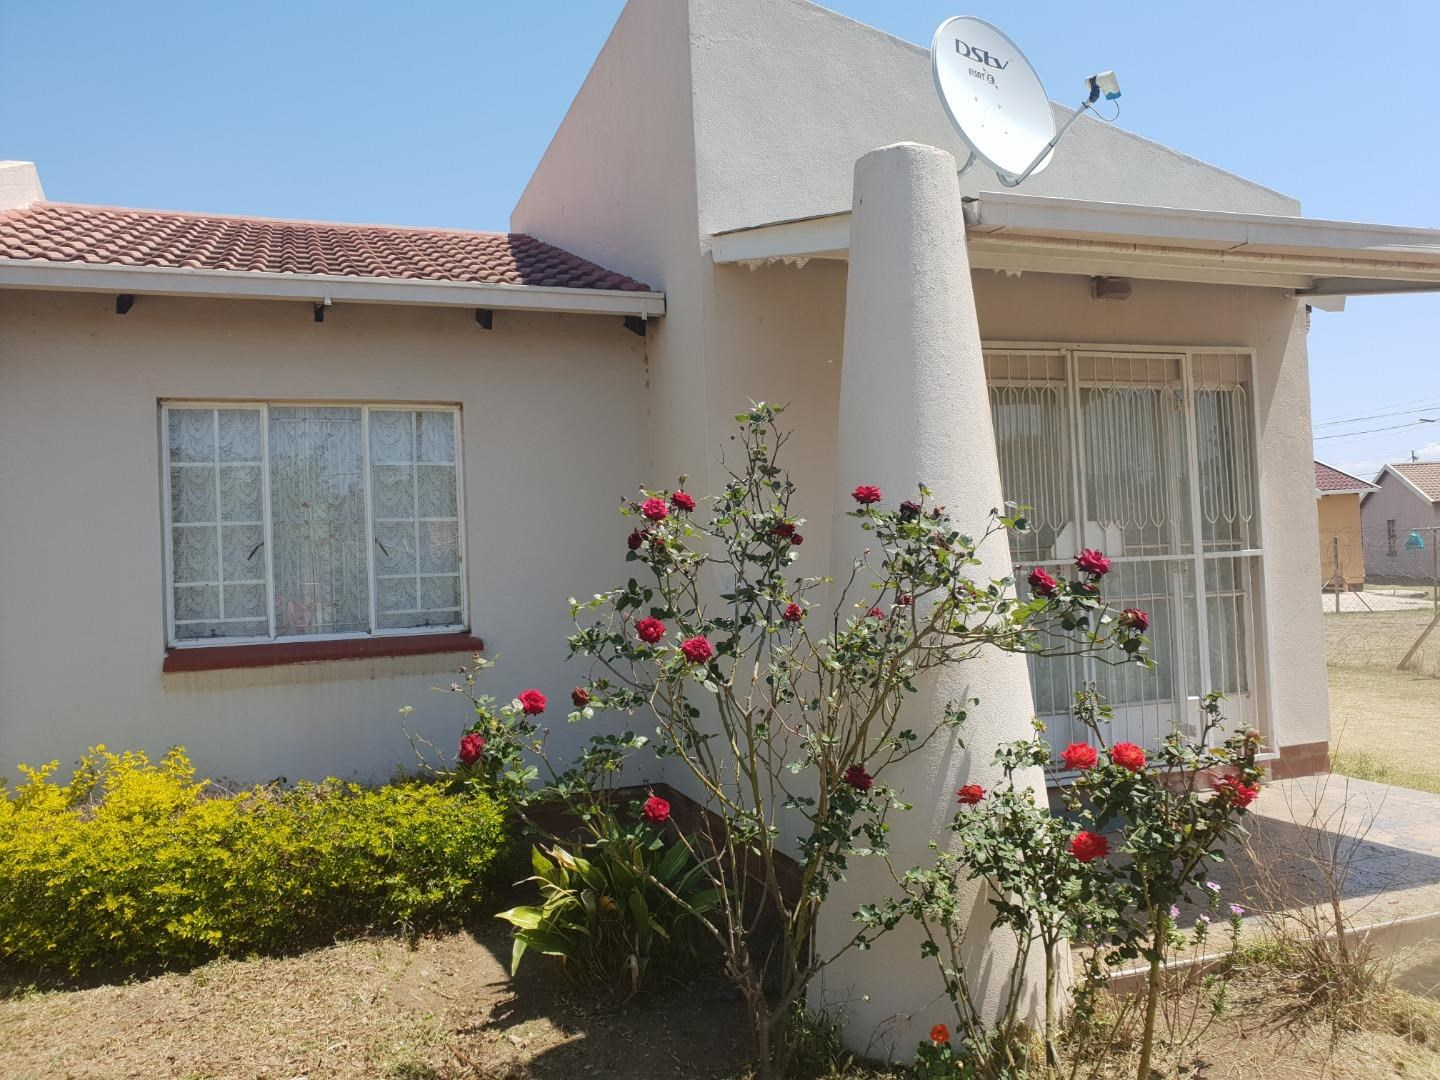 2 Bedroom House for Sale in Hyde Park